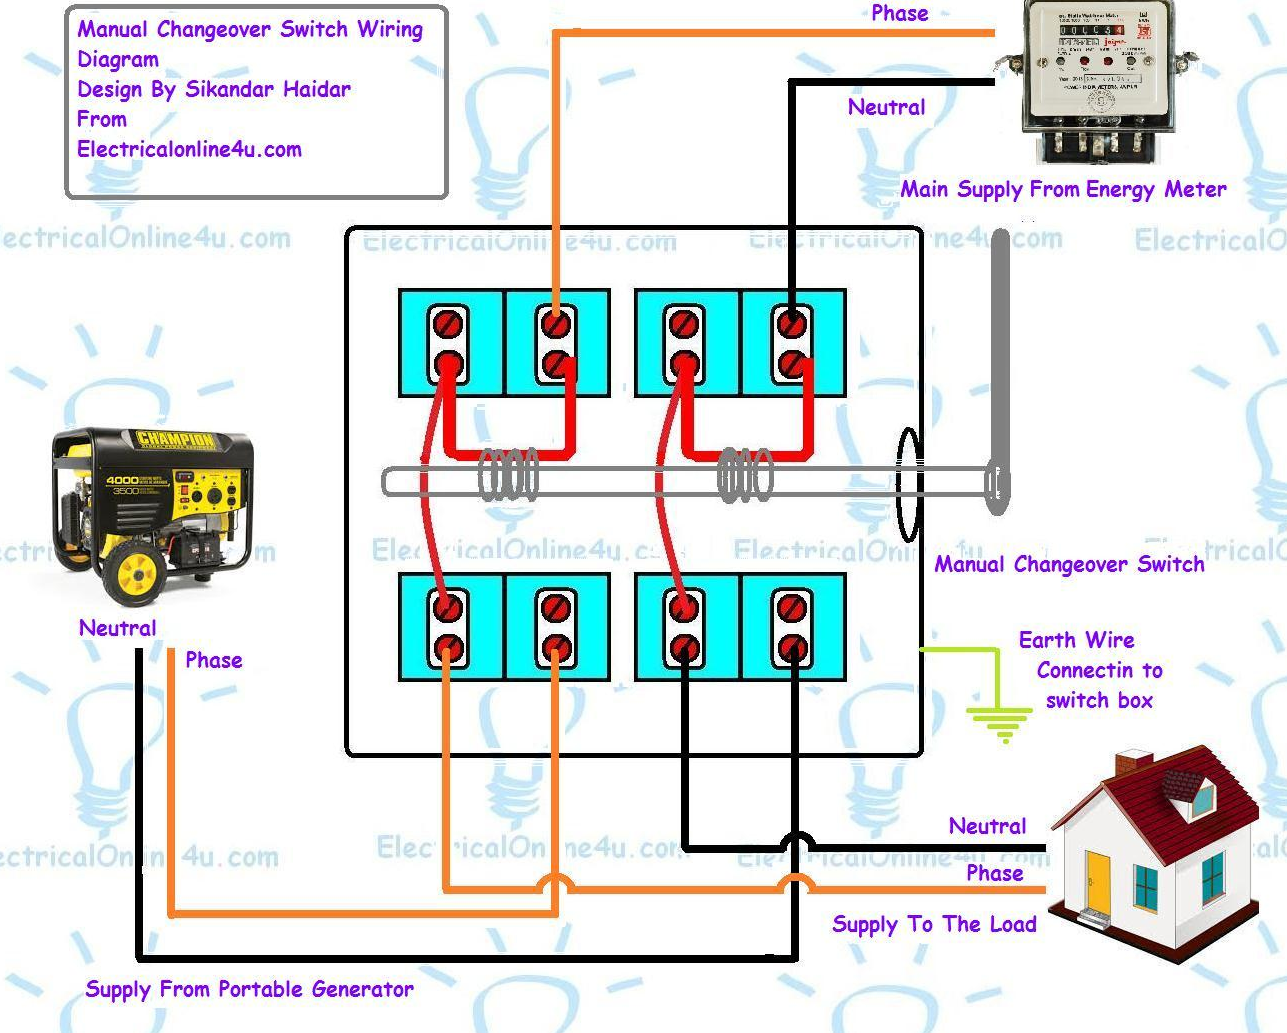 Home Wiring Diagram Maker Basic Guide House Plan Software Schematic Unique Images Gallery